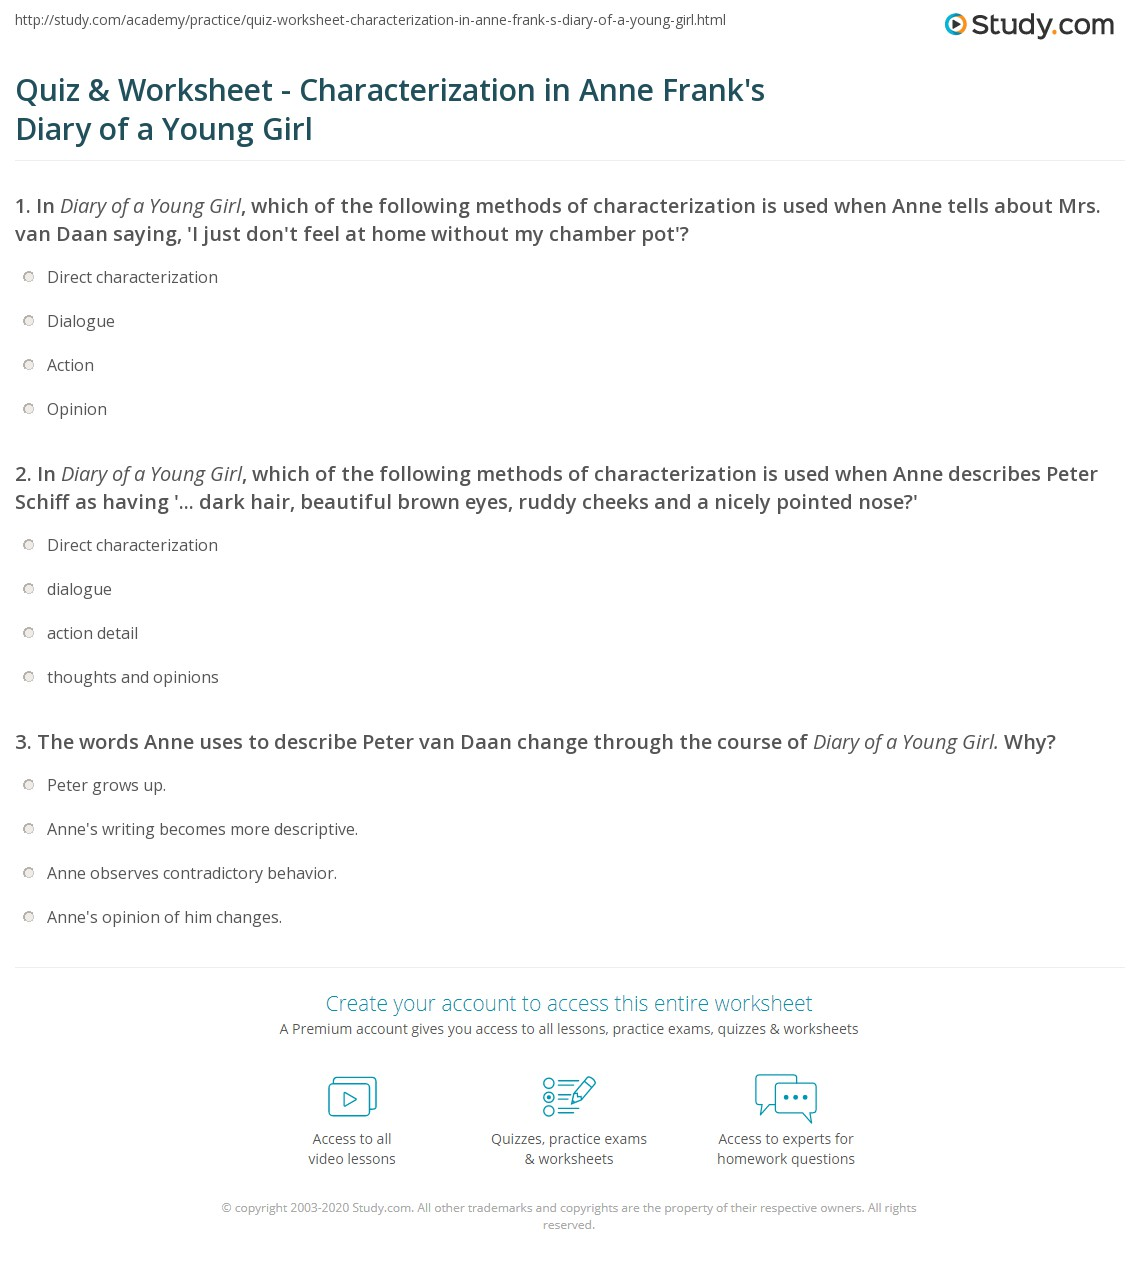 Printables Diary Of Anne Frank Worksheets quiz worksheet characterization in anne franks diary of a young girl which the following methods is used when describes peter schiff as havi